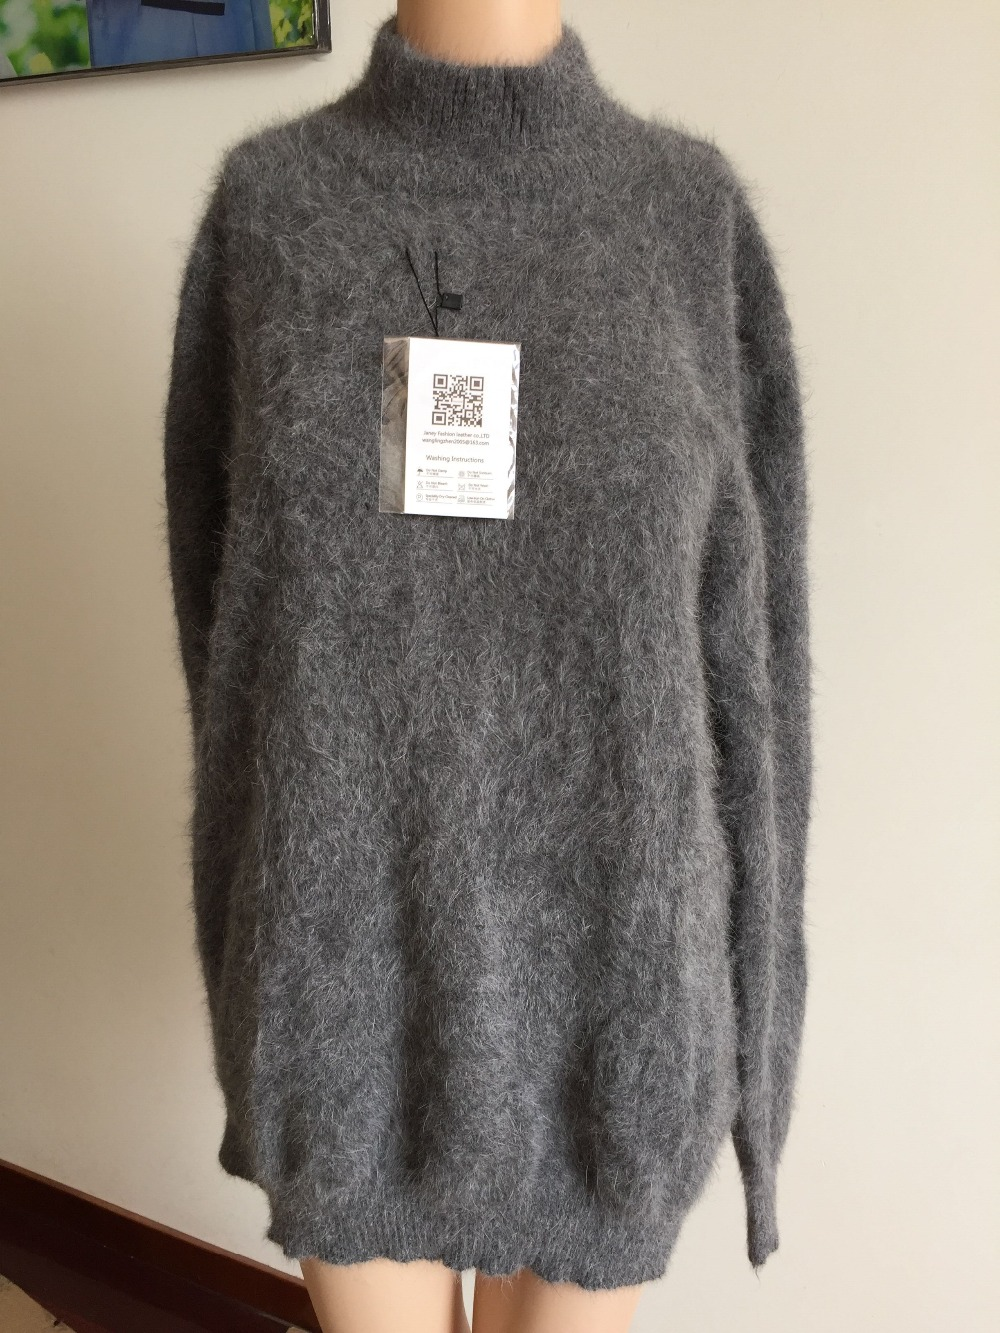 9ec54f3f3e Very Very Low Price- Inventory clearance sale - 100% Mink Cashmere Women  Sweaters and pullovers free shipping